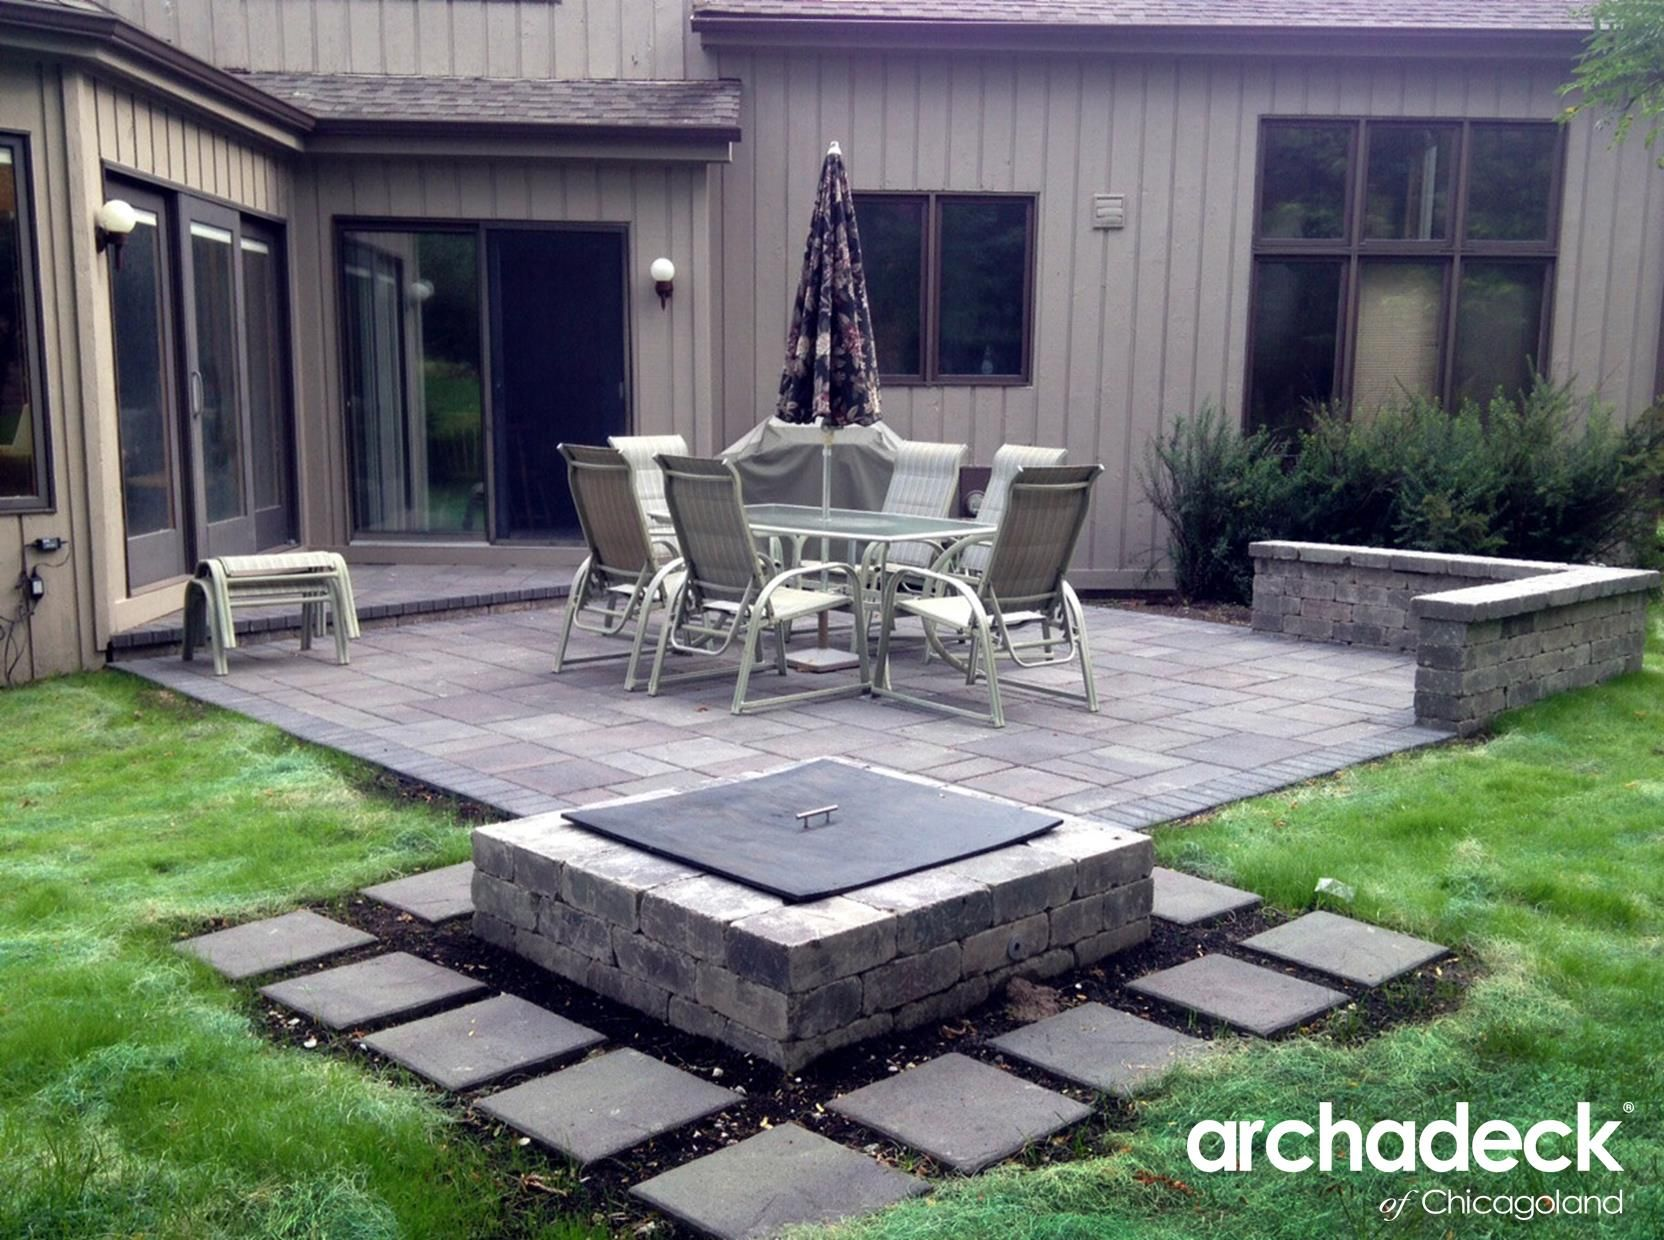 Belgard Patio With Square Fire Pit By Chicago Suburb Patio Builder  Archadeck Of Chicagoland